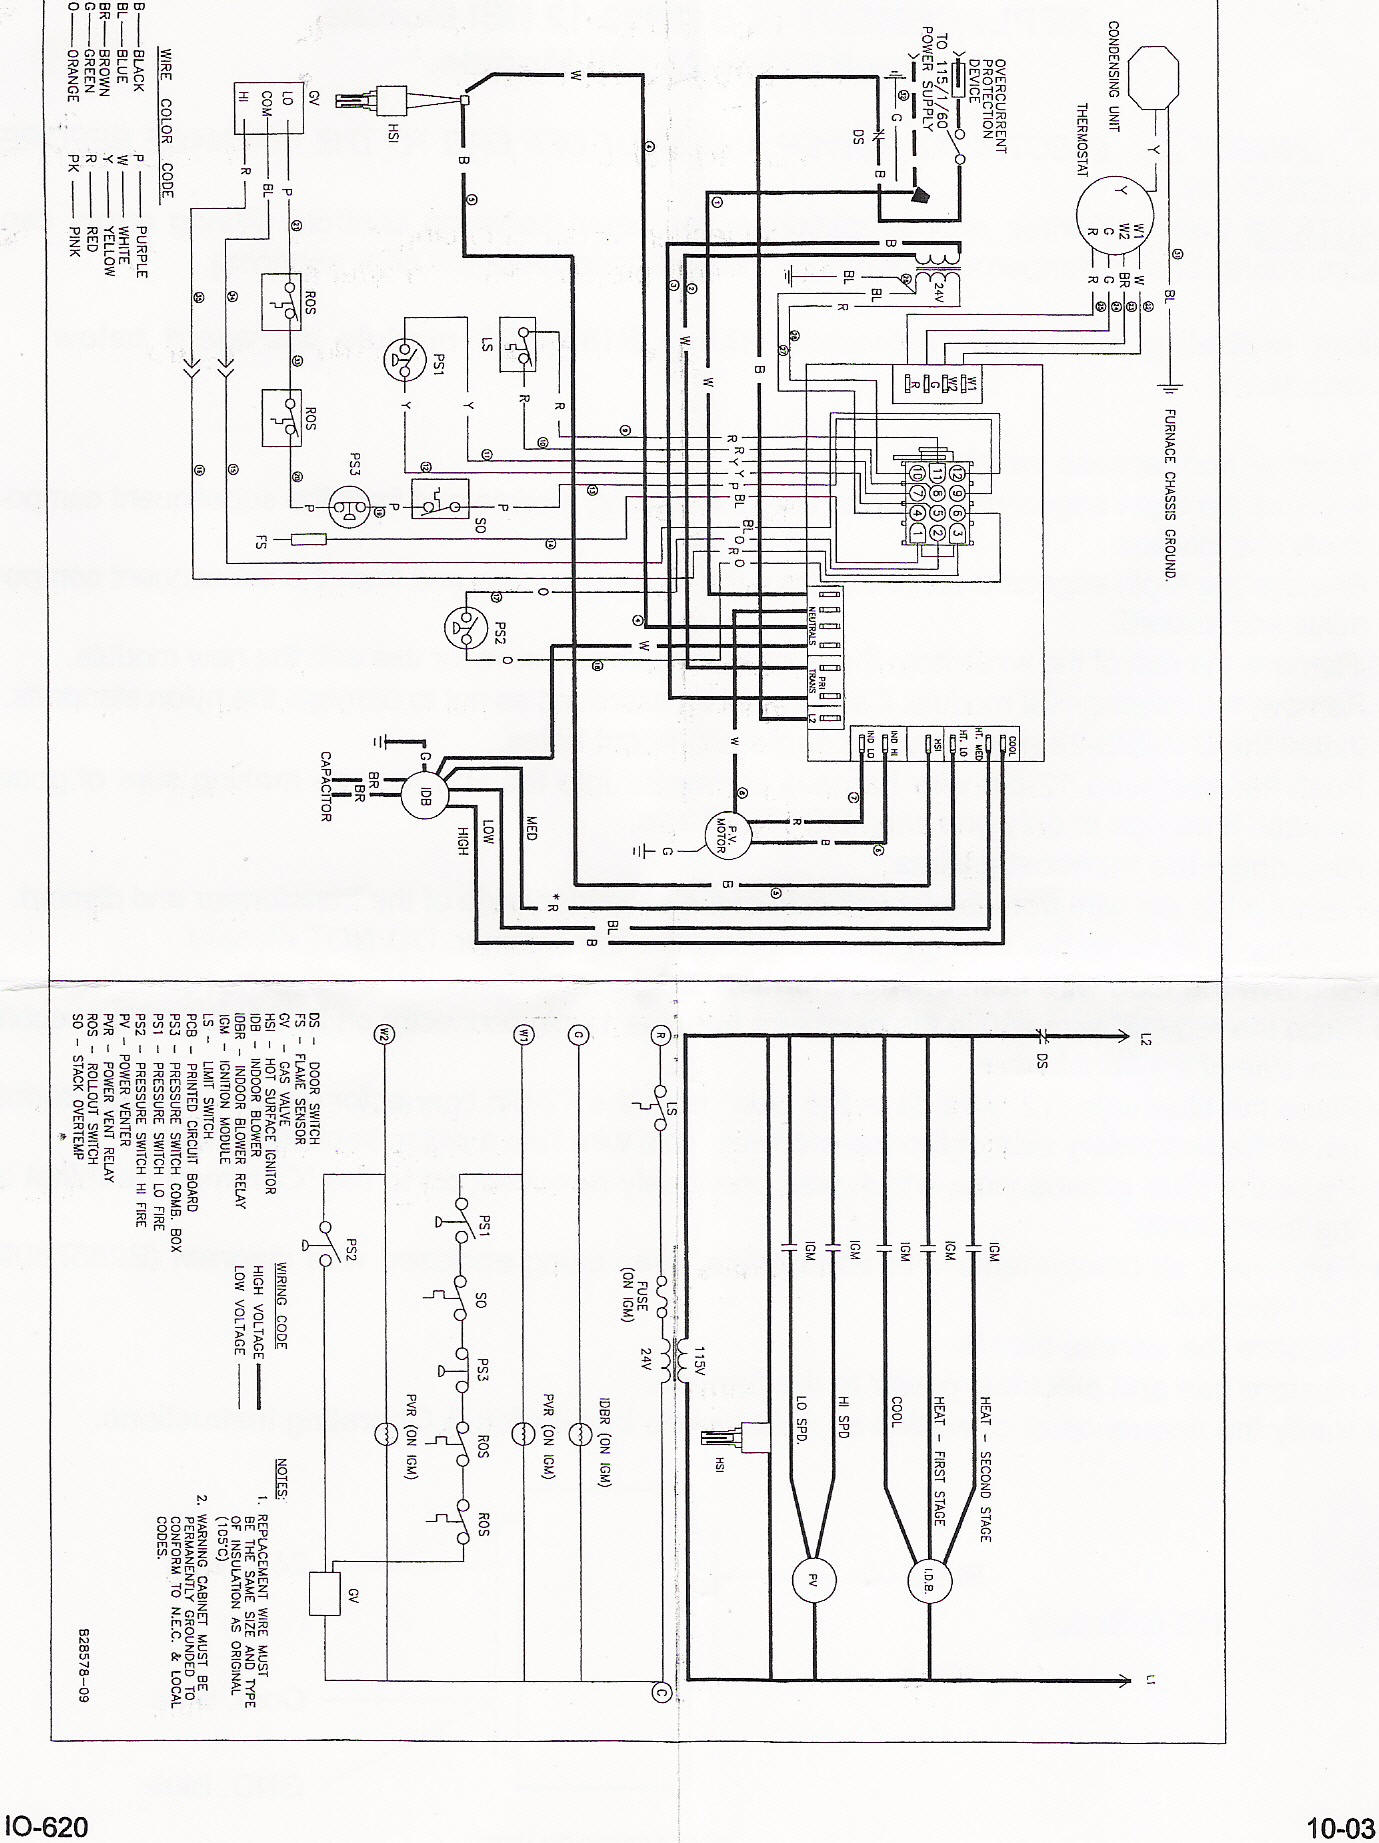 goodma2 instr goodman control board b18099 23 instructions goodman air handler wiring diagrams at fashall.co